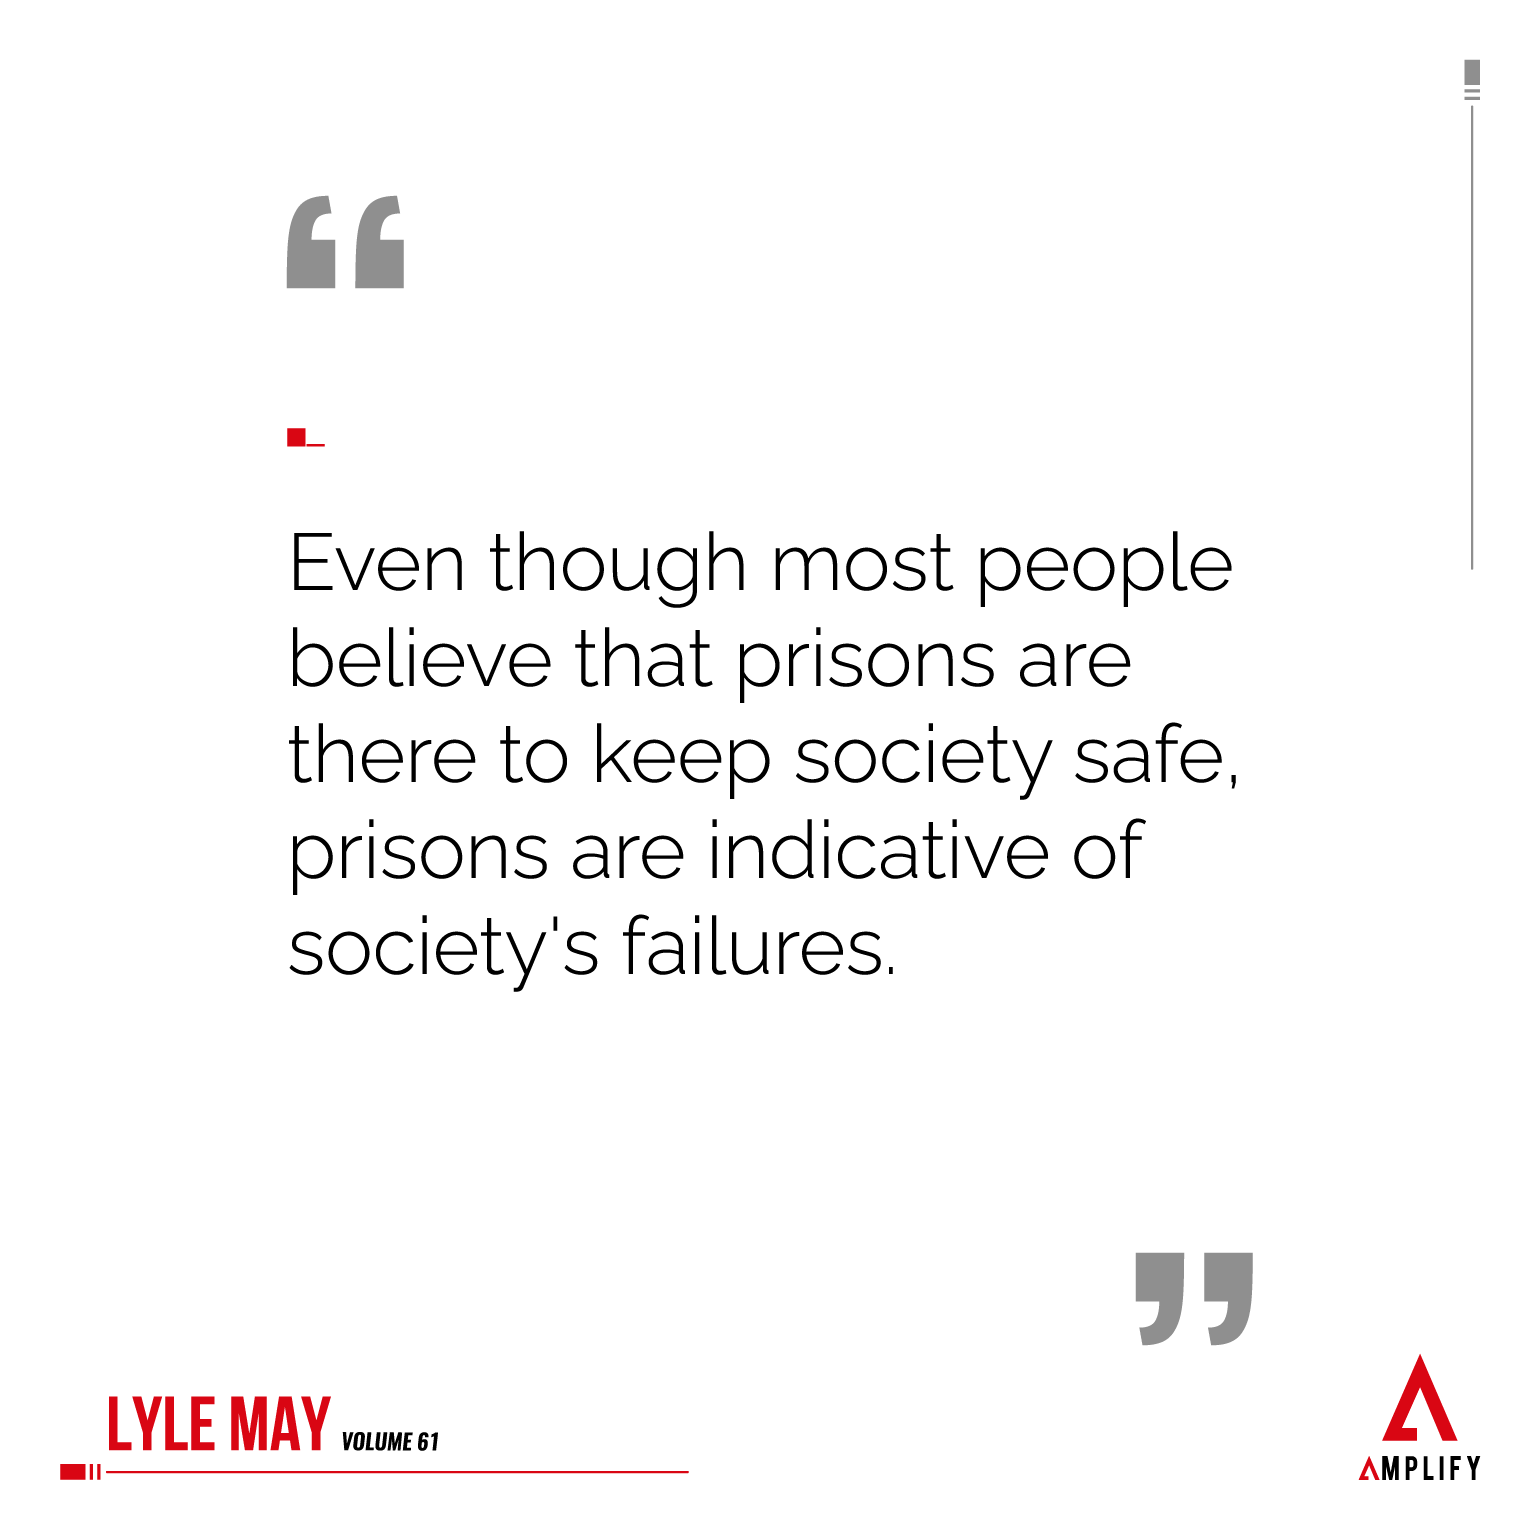 Quote: Even though most people believe that prisons are there to keep society safe, prisons are indicative of society's failures.